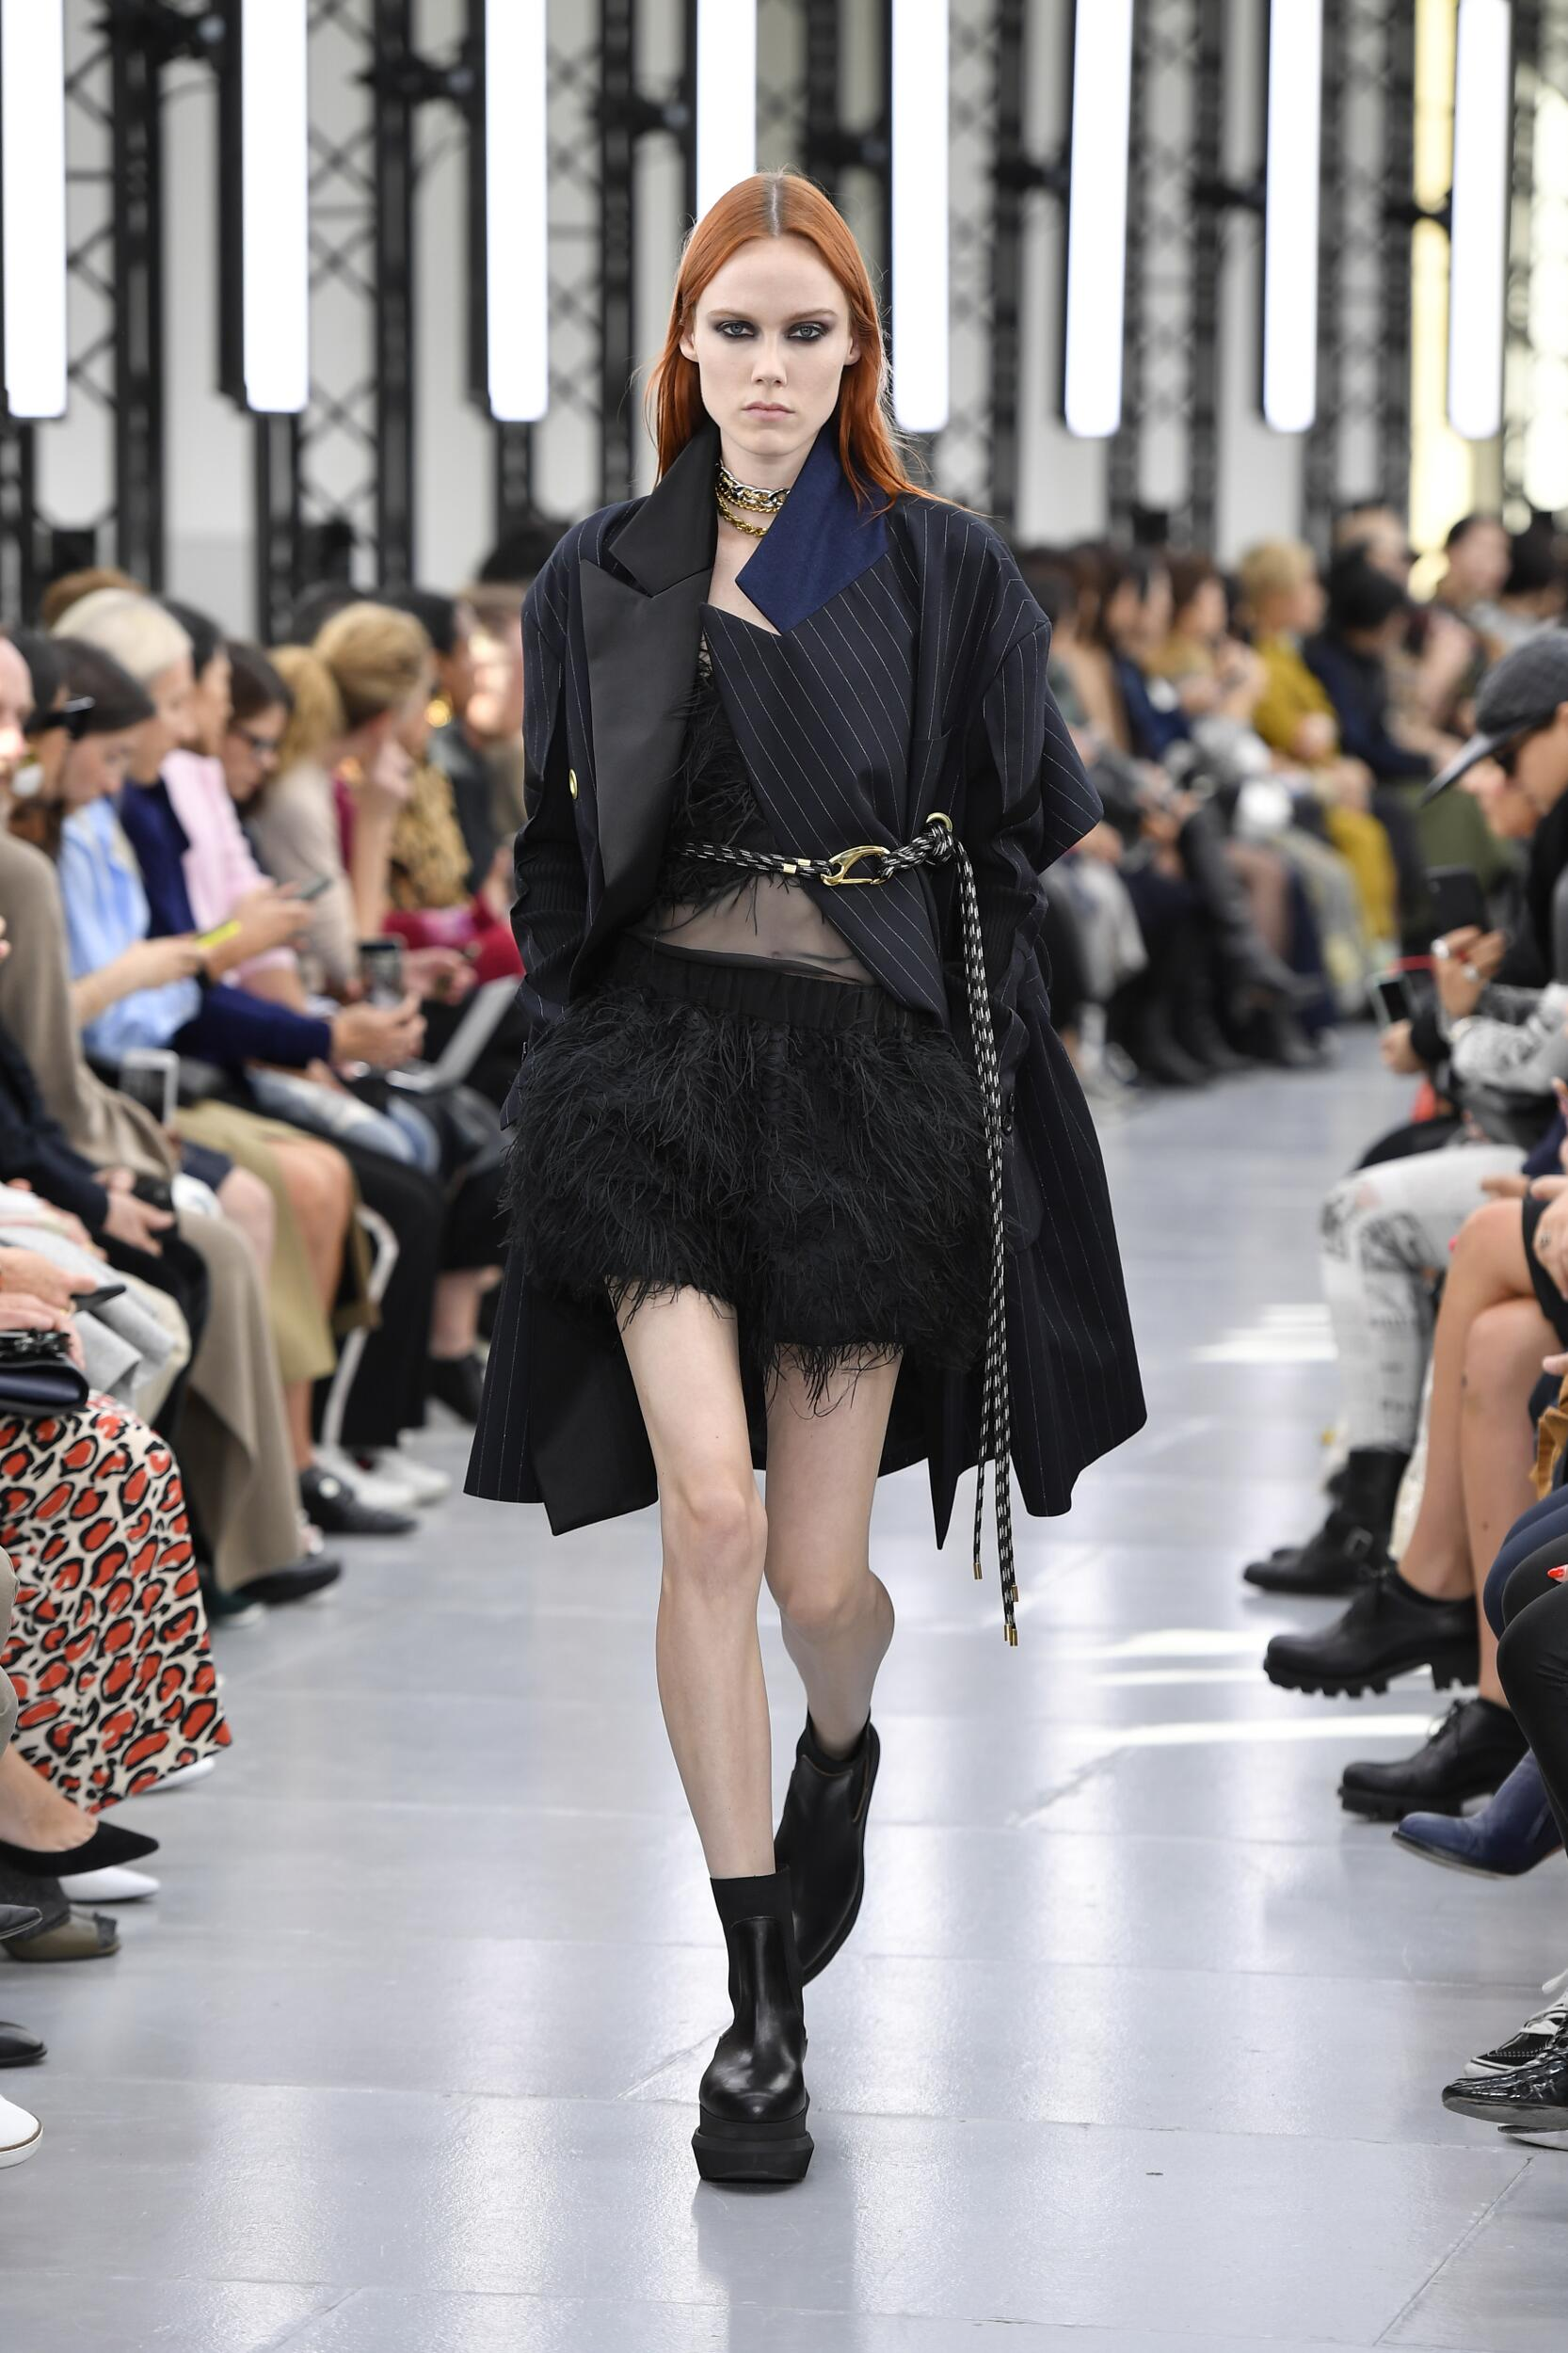 SACAI SPRING SUMMER 2020 WOMENS COLLECTION The Skinny Beep